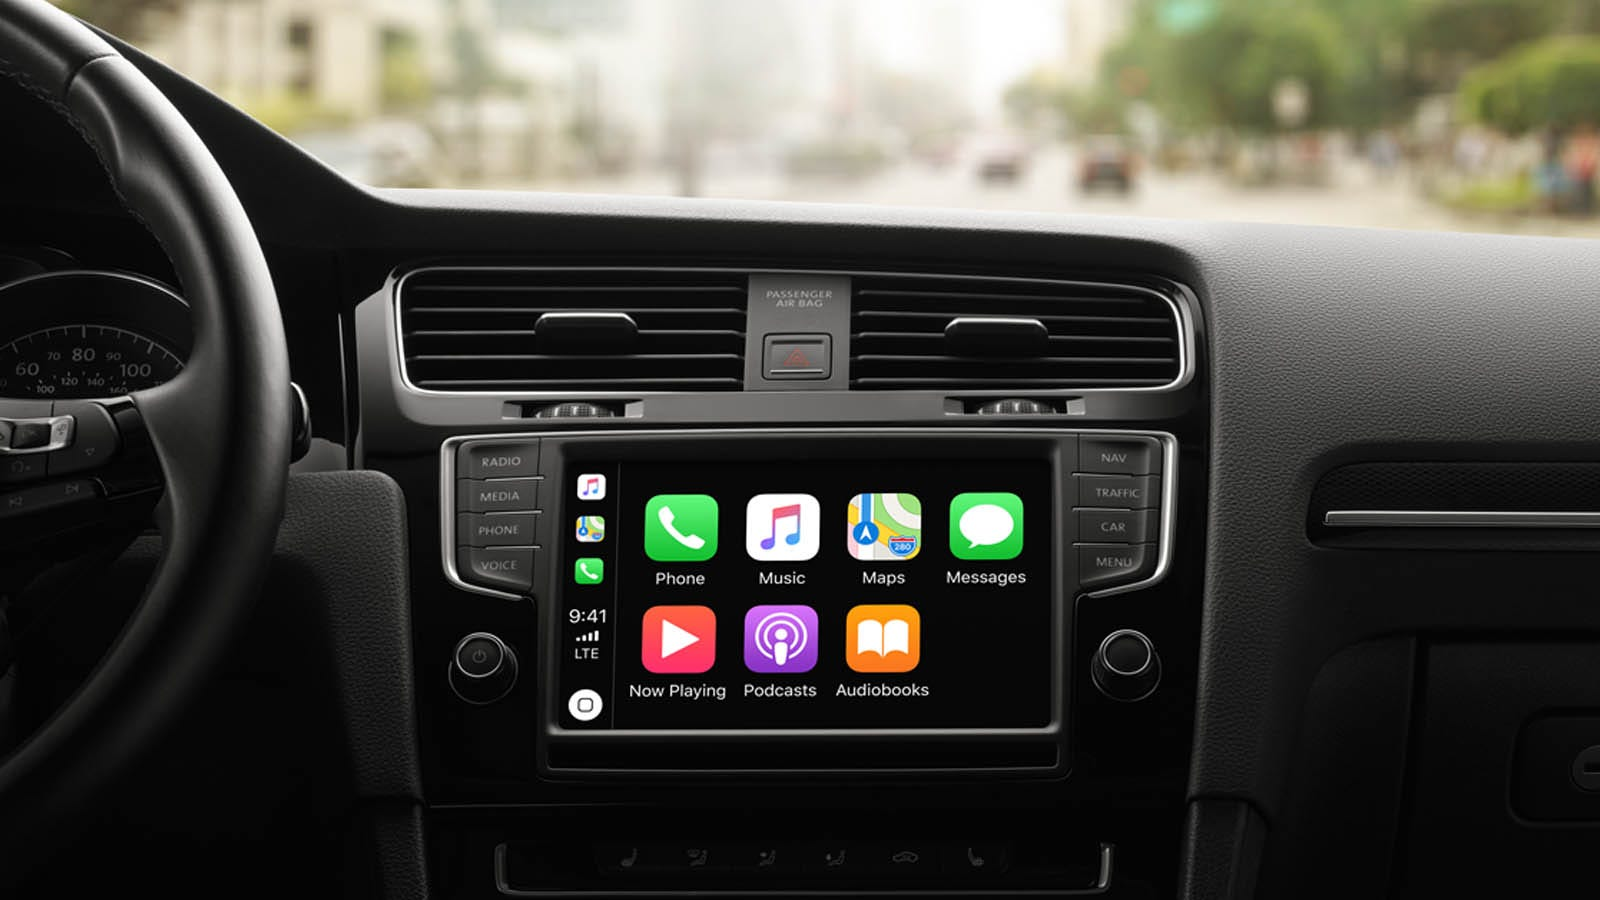 7 Of The Best Apple CarPlay Apps